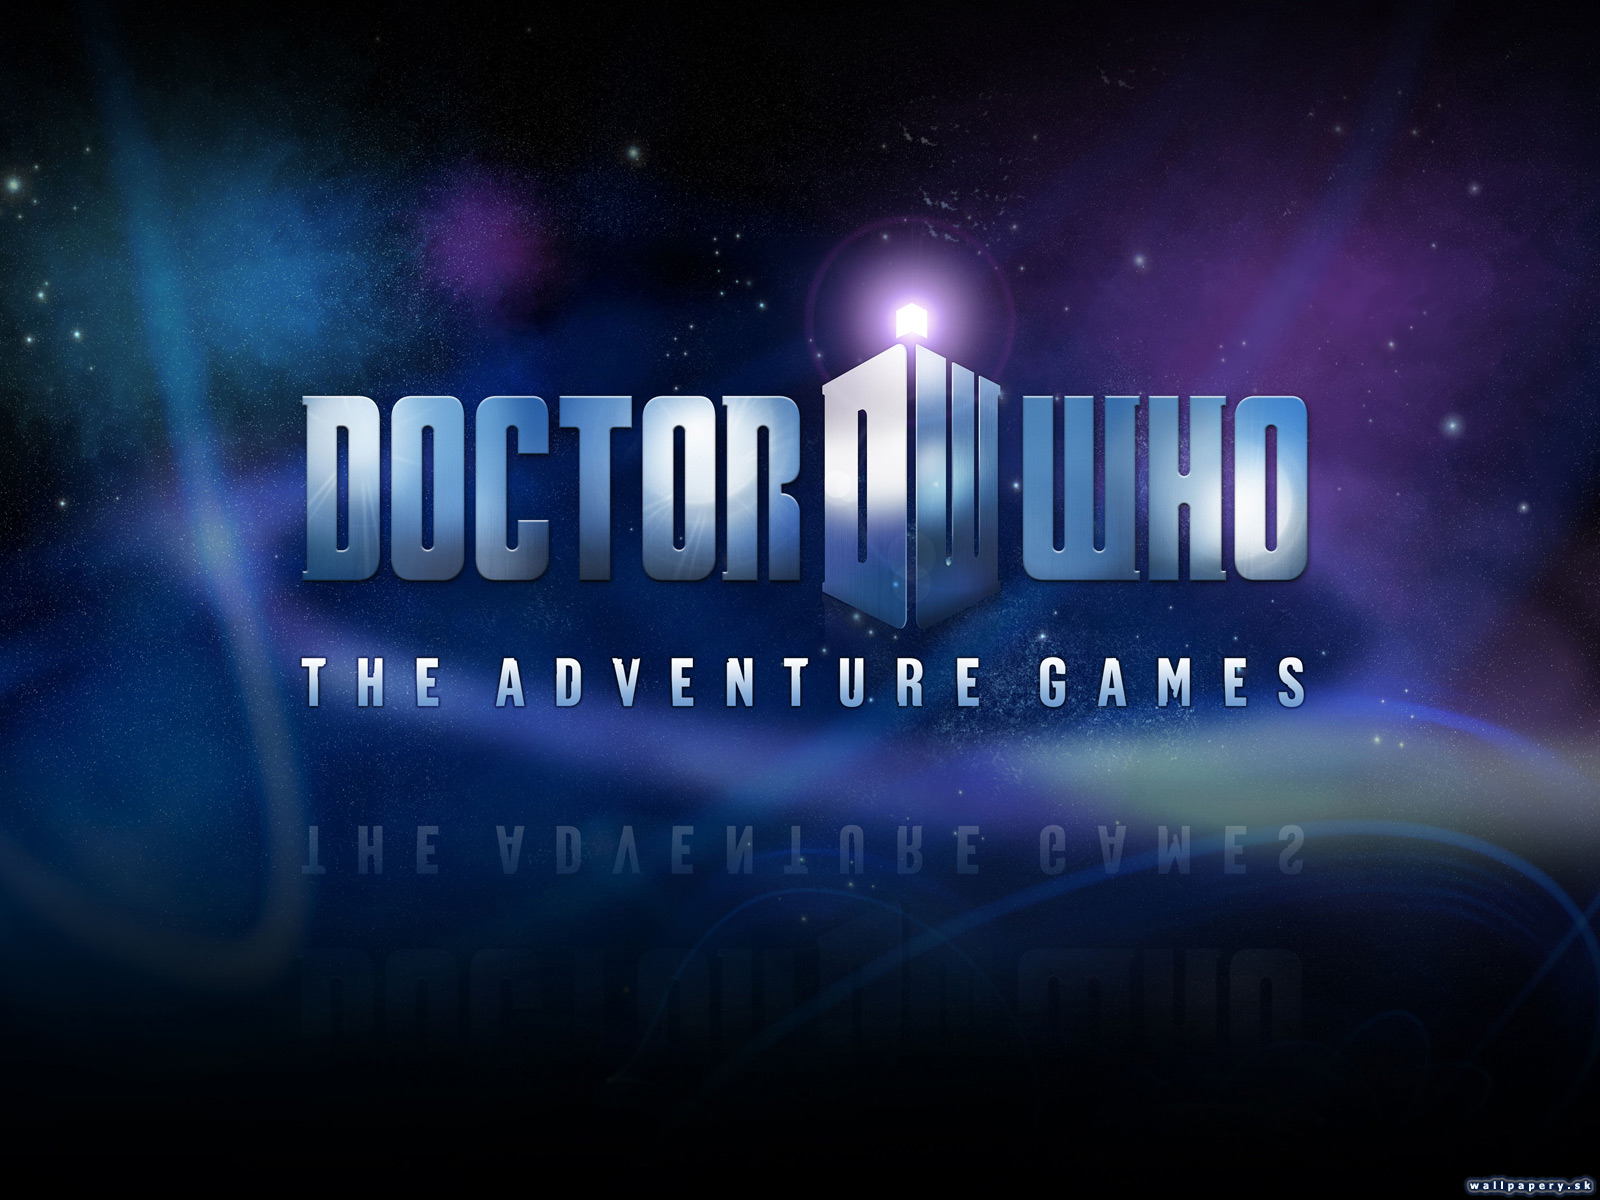 Doctor Who: The Adventure Games - City of the Daleks - wallpaper 3